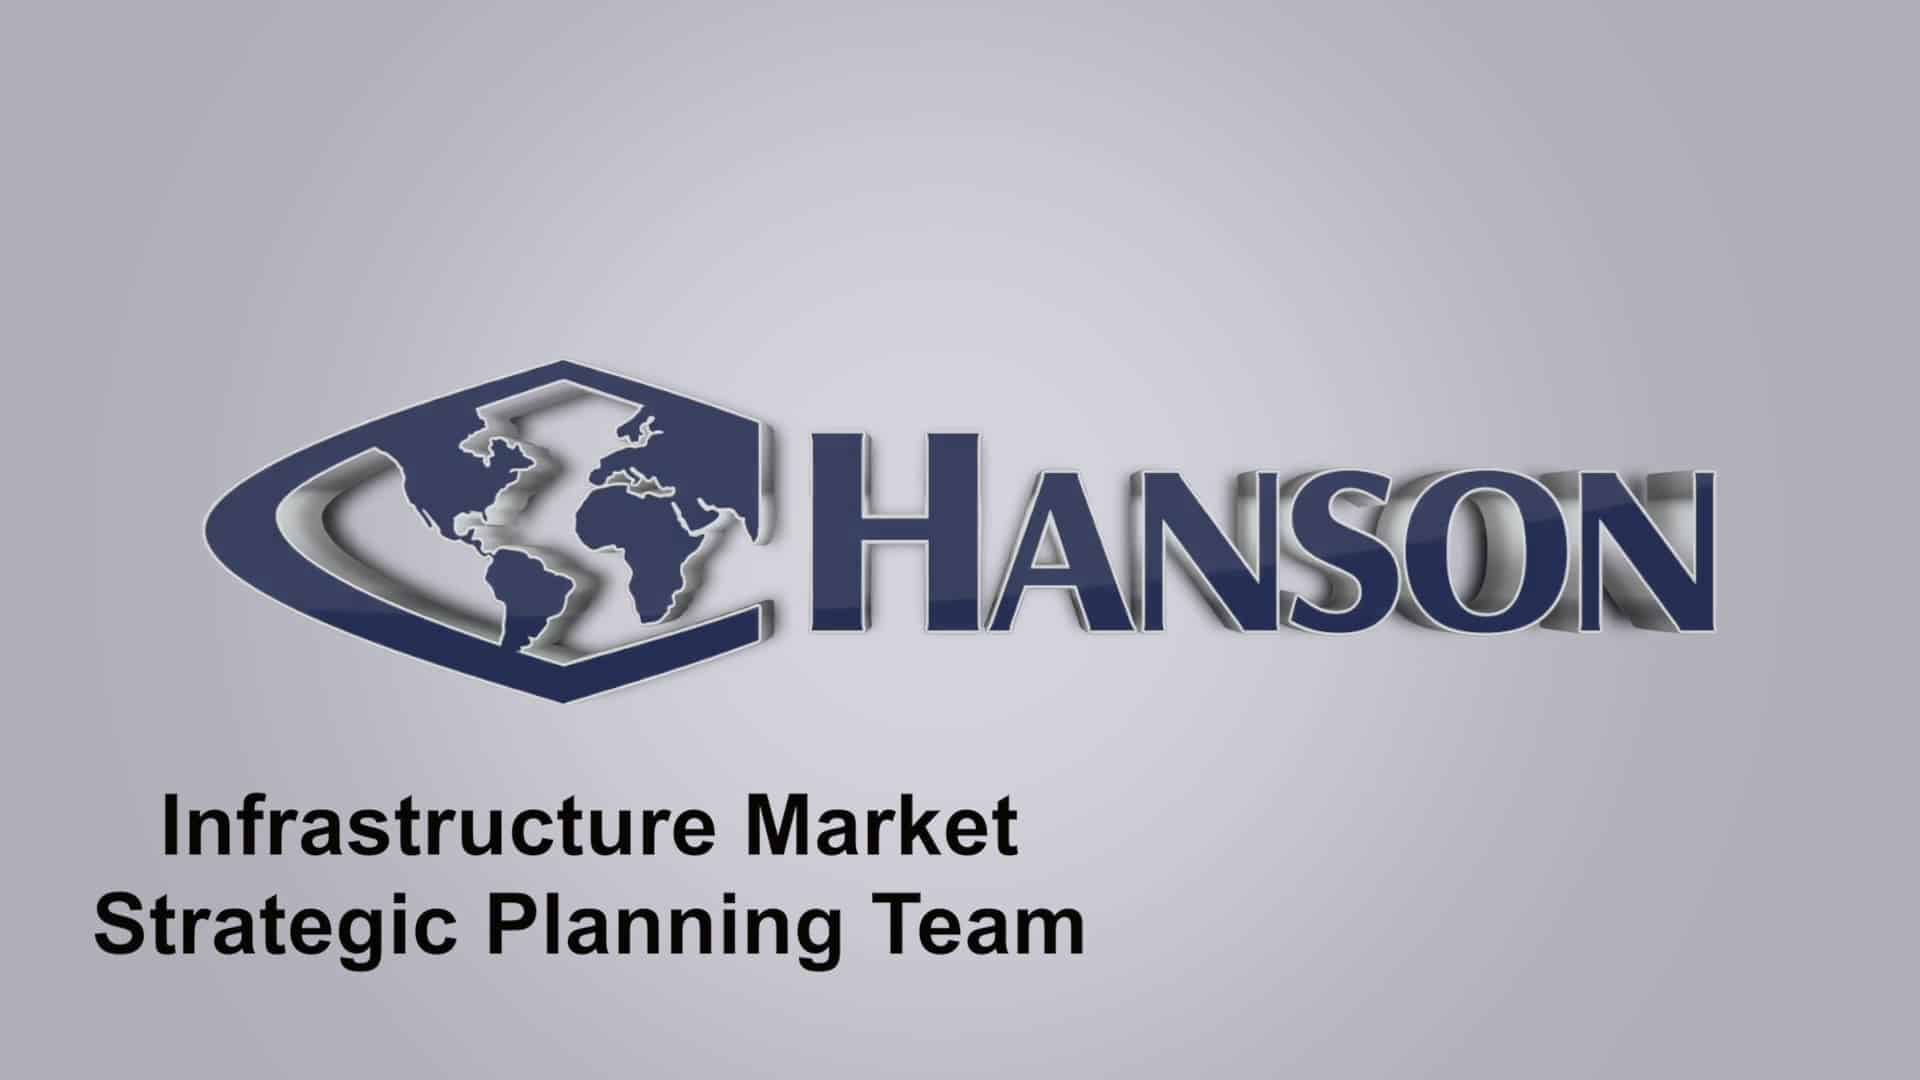 Infrastructure Market: Strategic Planning